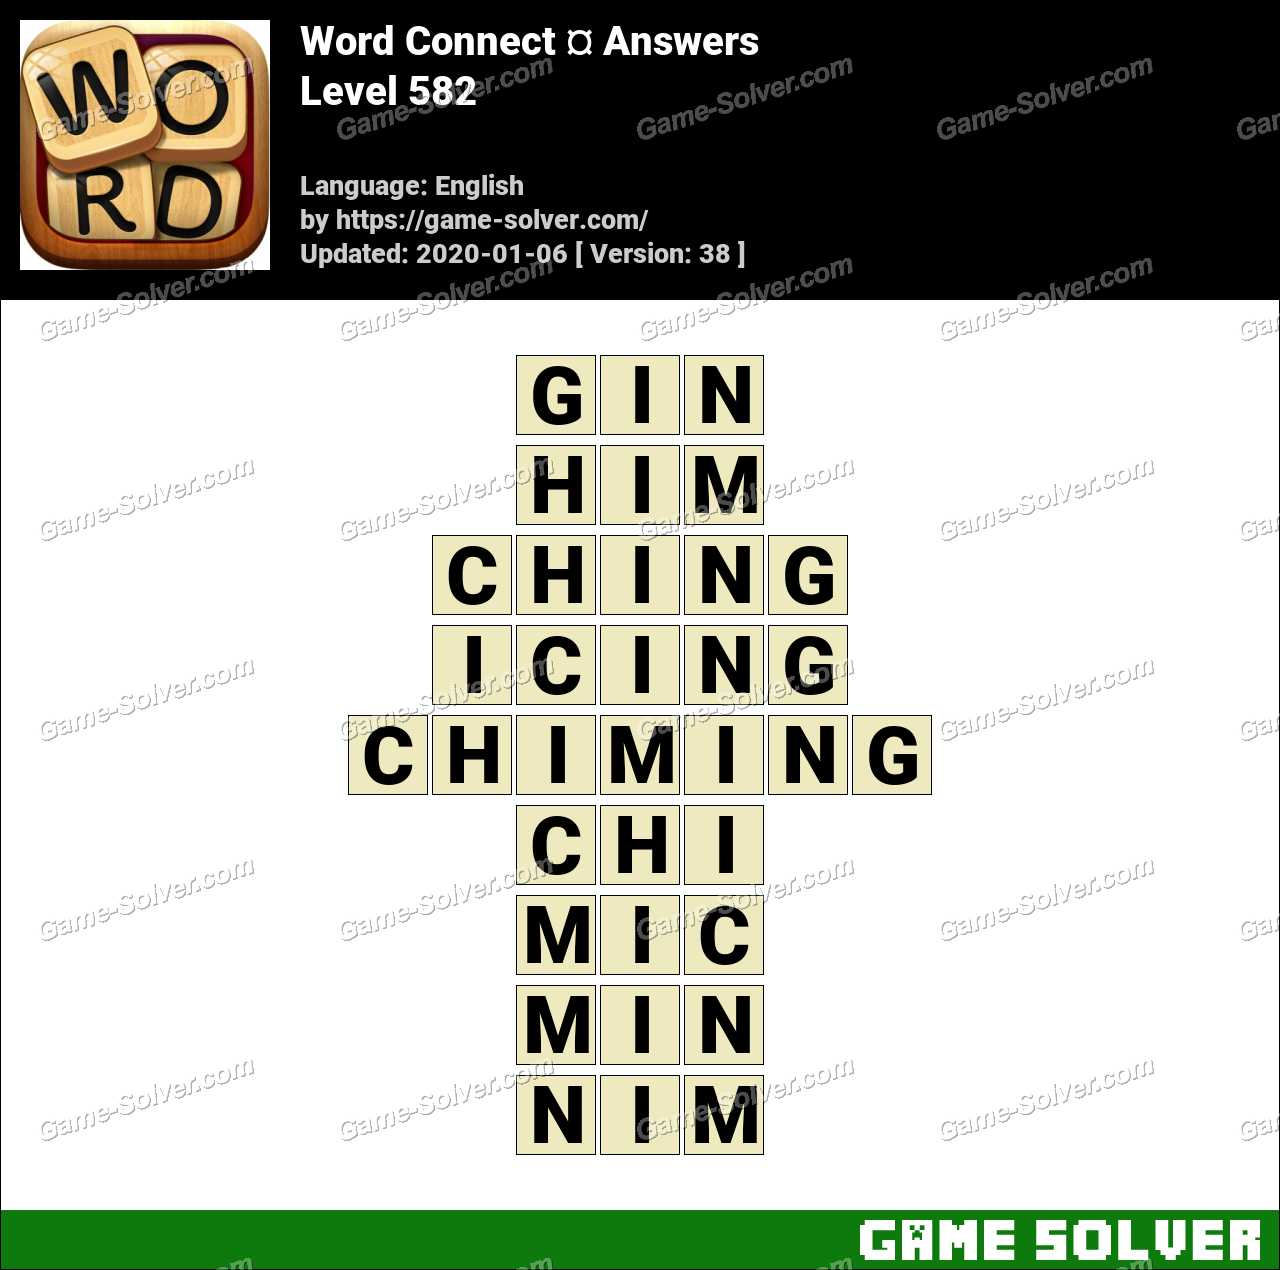 Word Connect Level 582 Answers